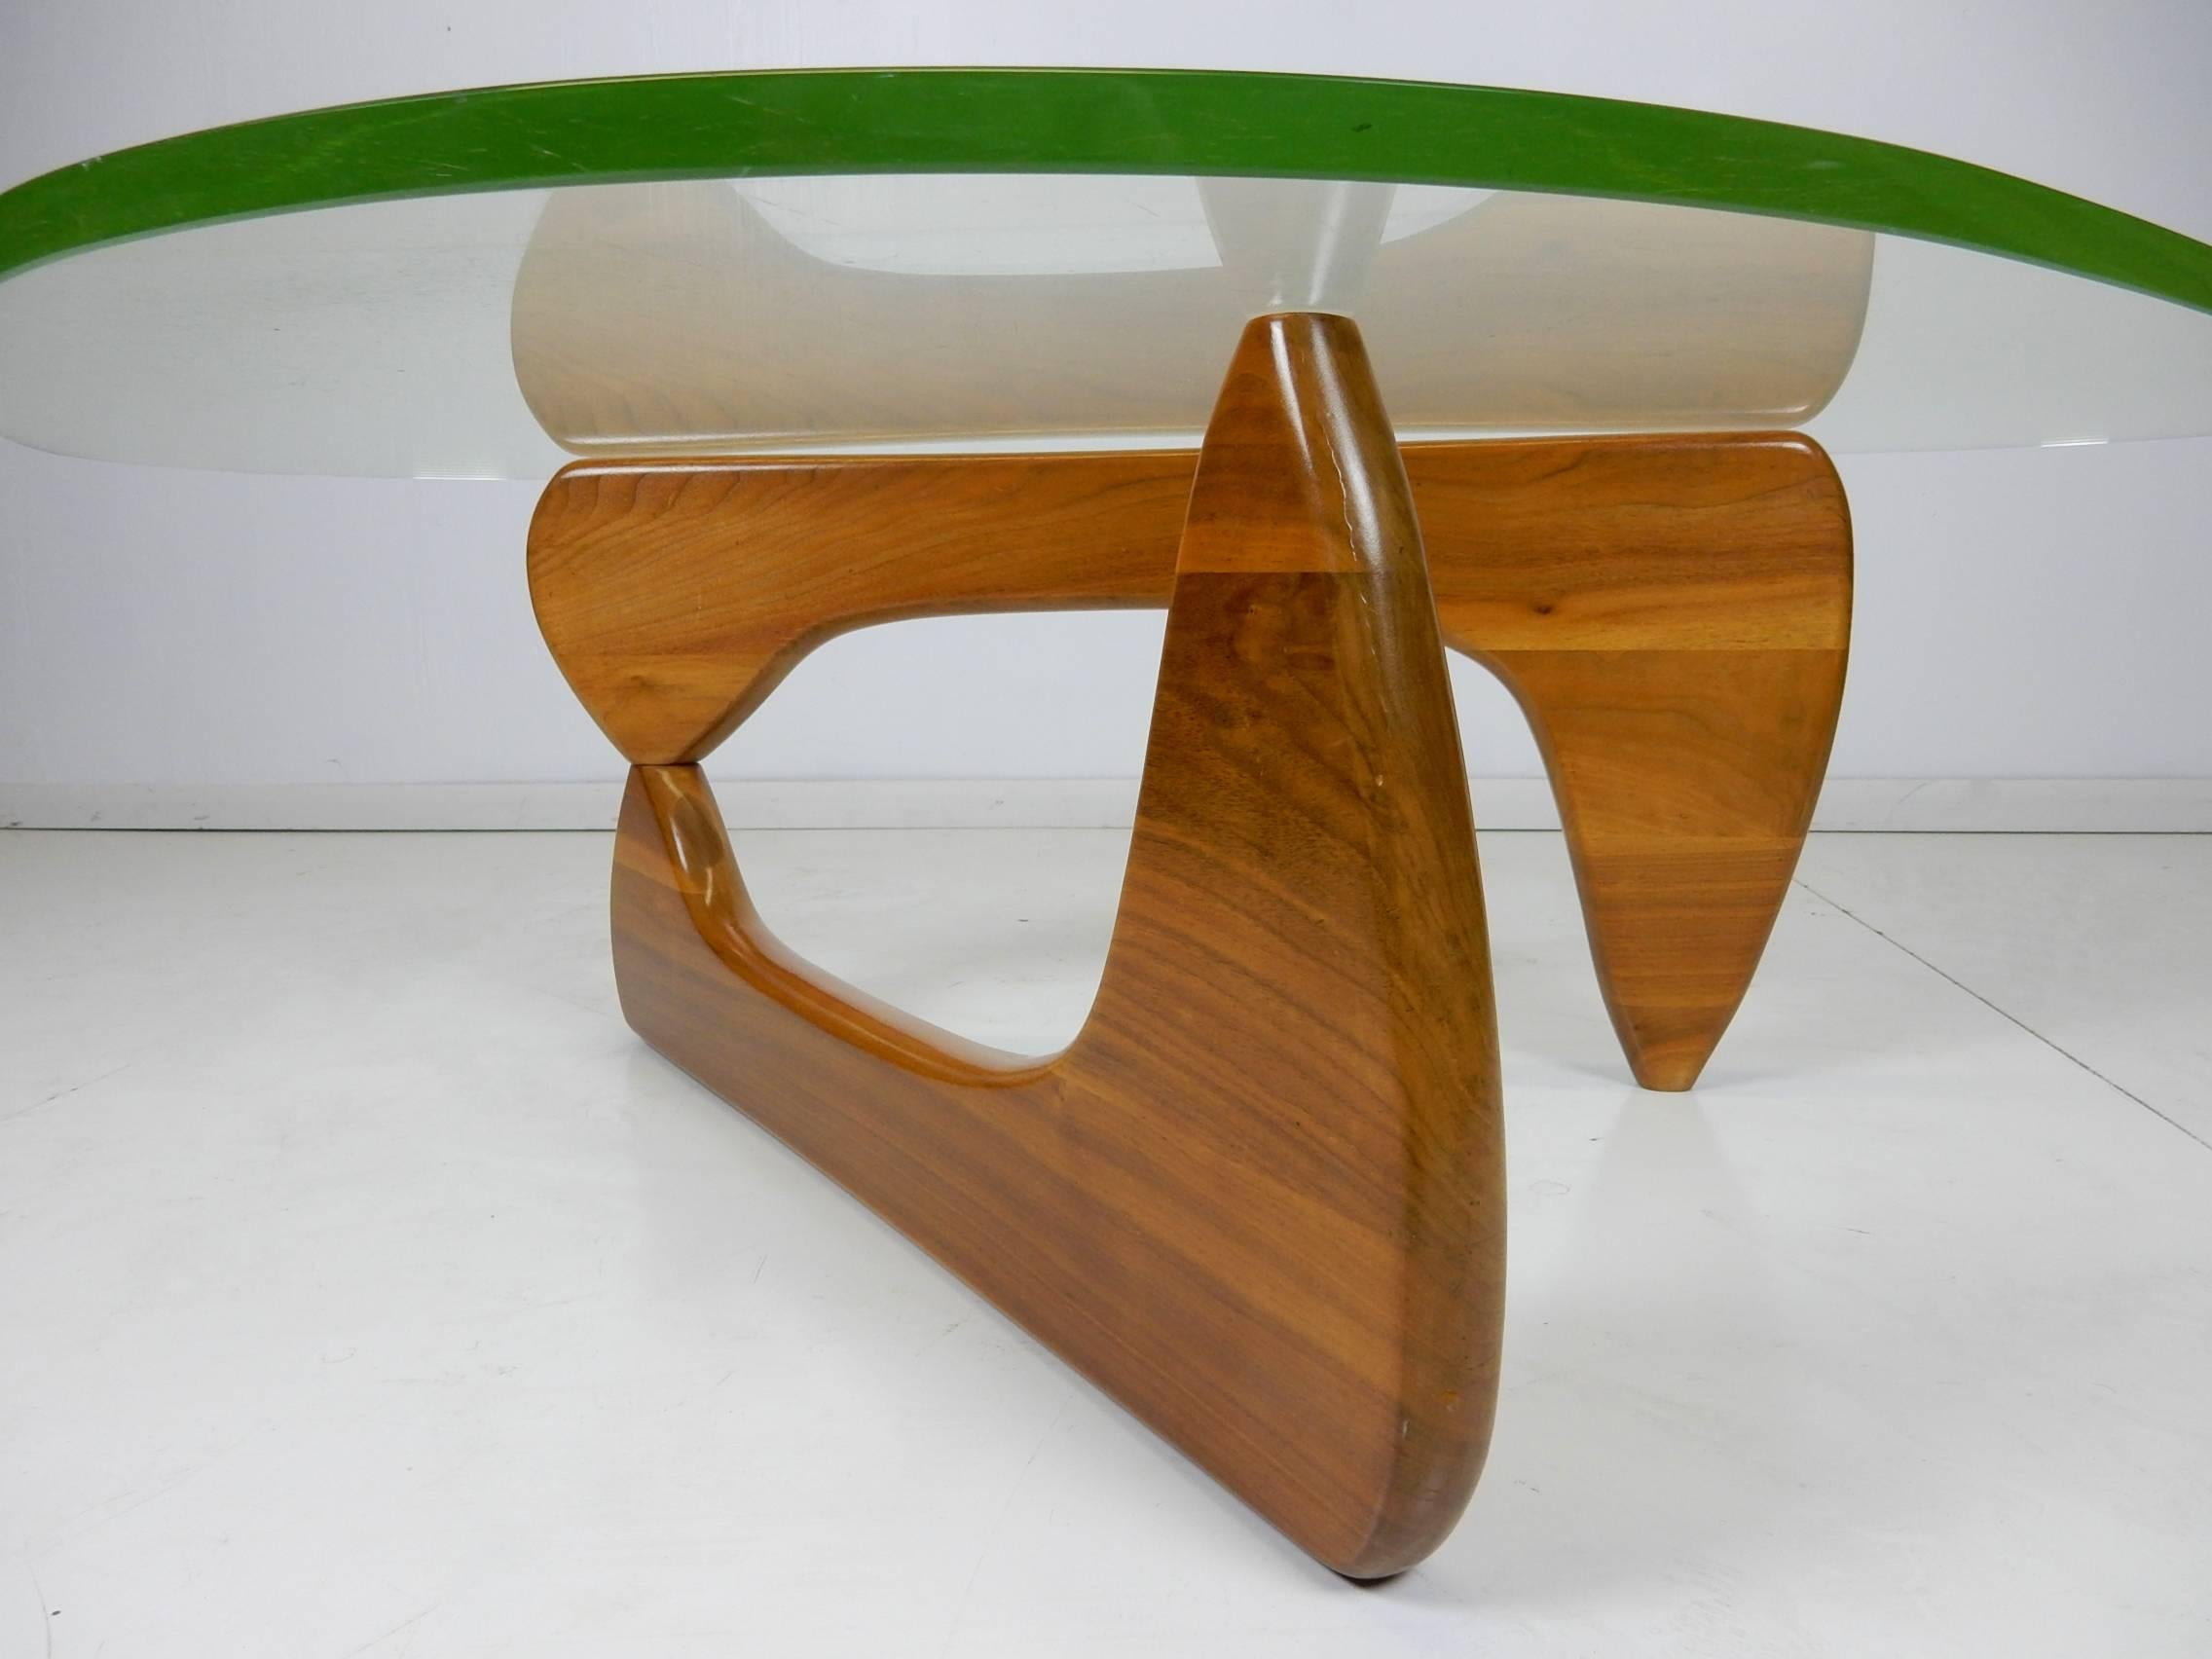 Original Early Isamu Noguchi Sculpture Coffee Table At 1stdibs